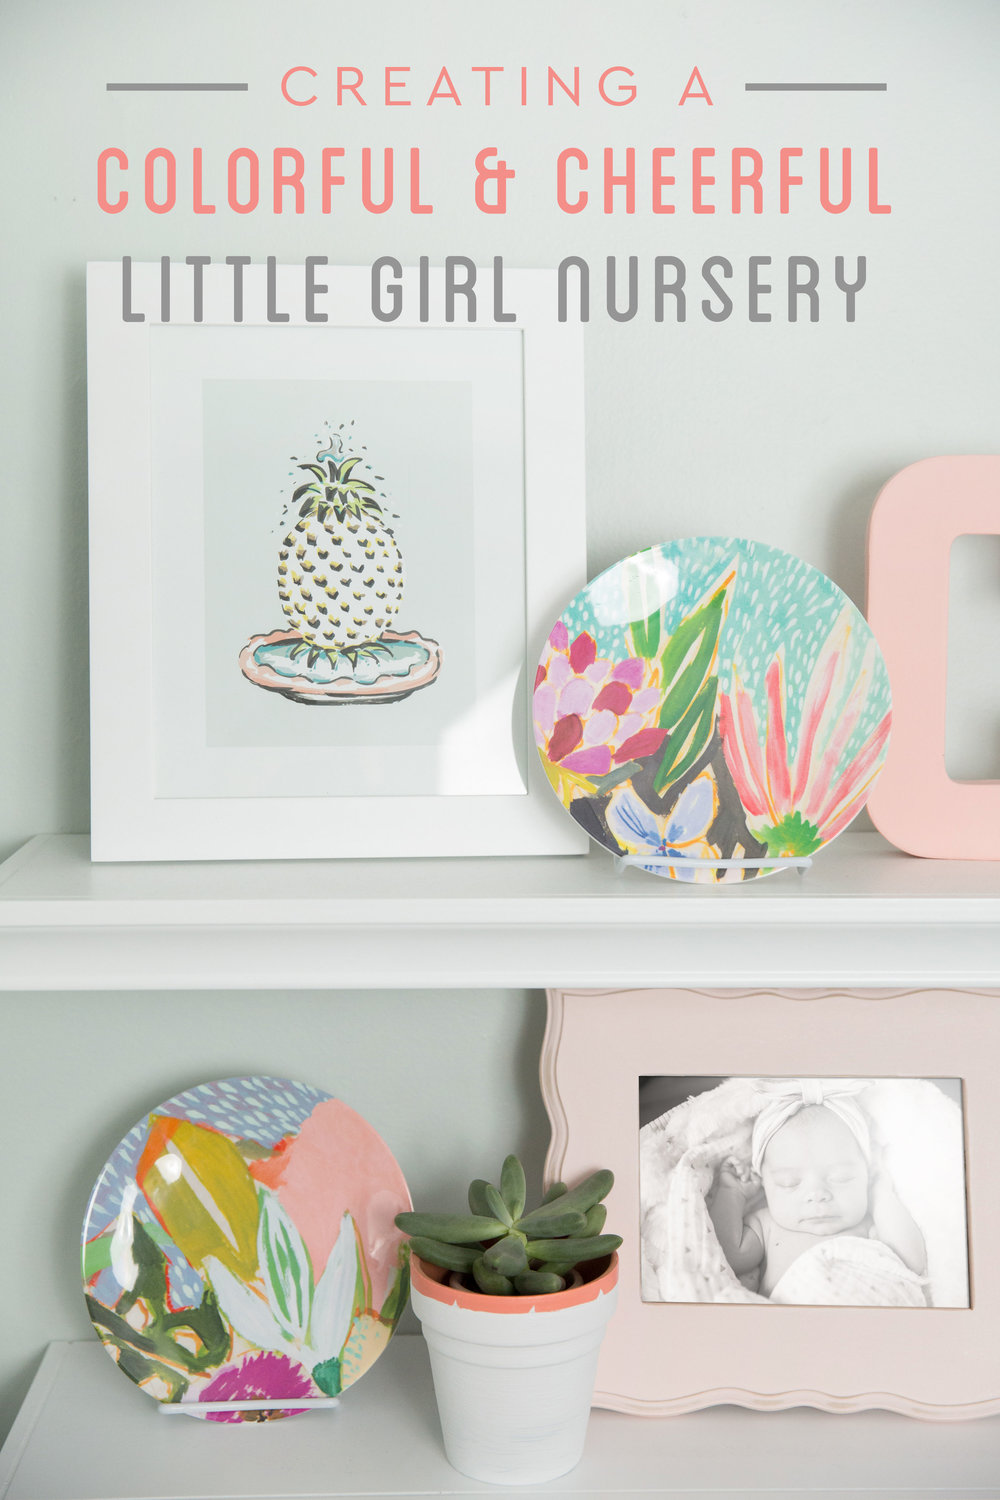 Creating a Colorful Little Girl Nursery